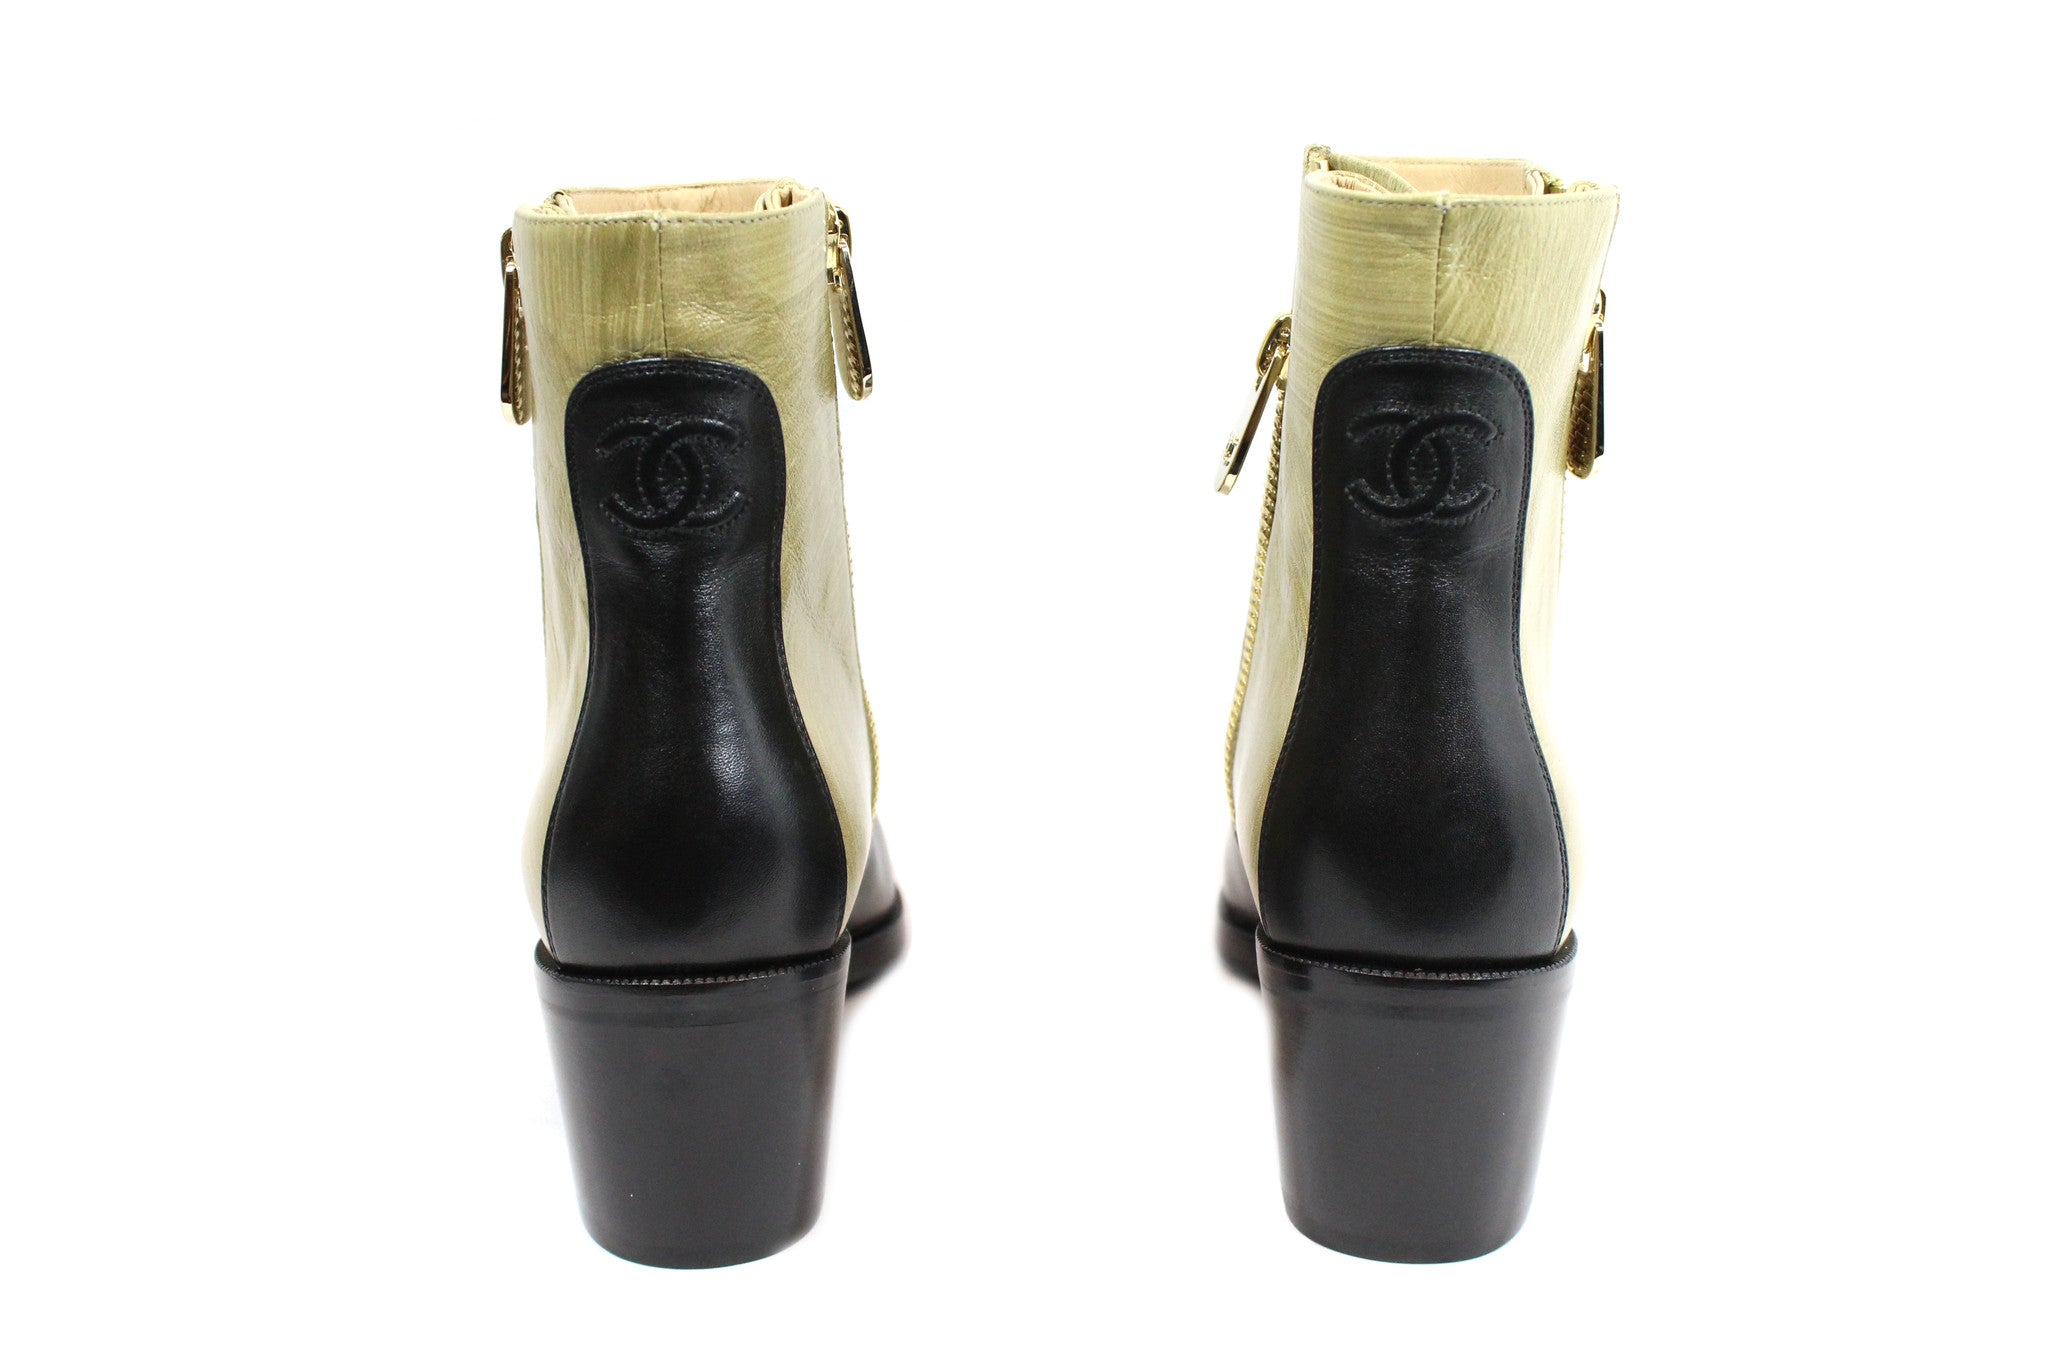 Chanel Two-tone Short Calfskin Boots (Size 38) - Encore Consignment - 2